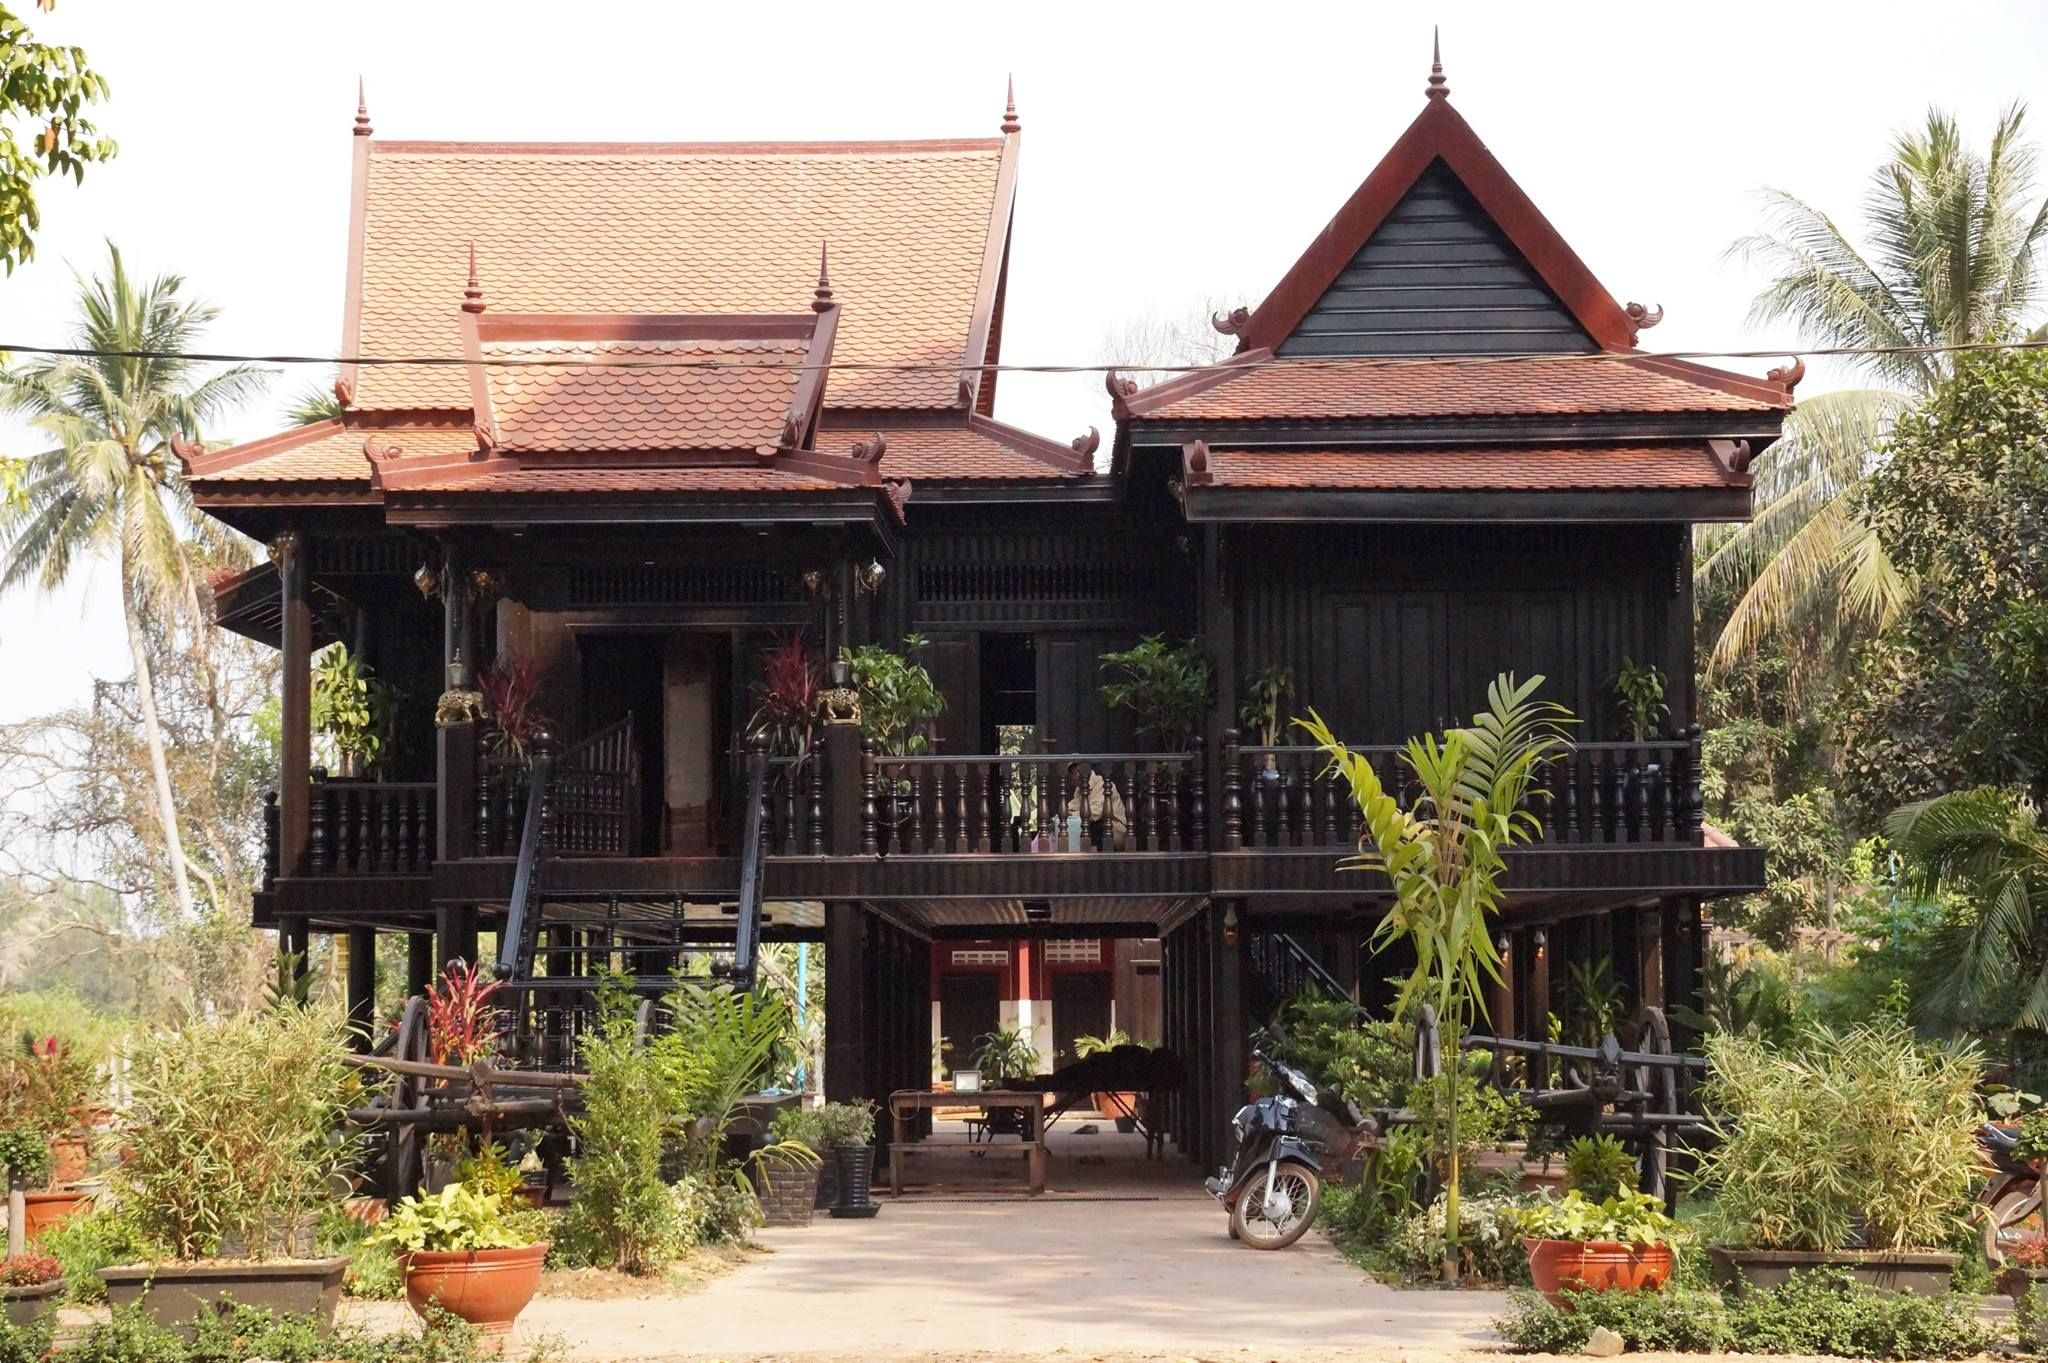 House design in cambodia 28 images home design khmer for Architecture khmer